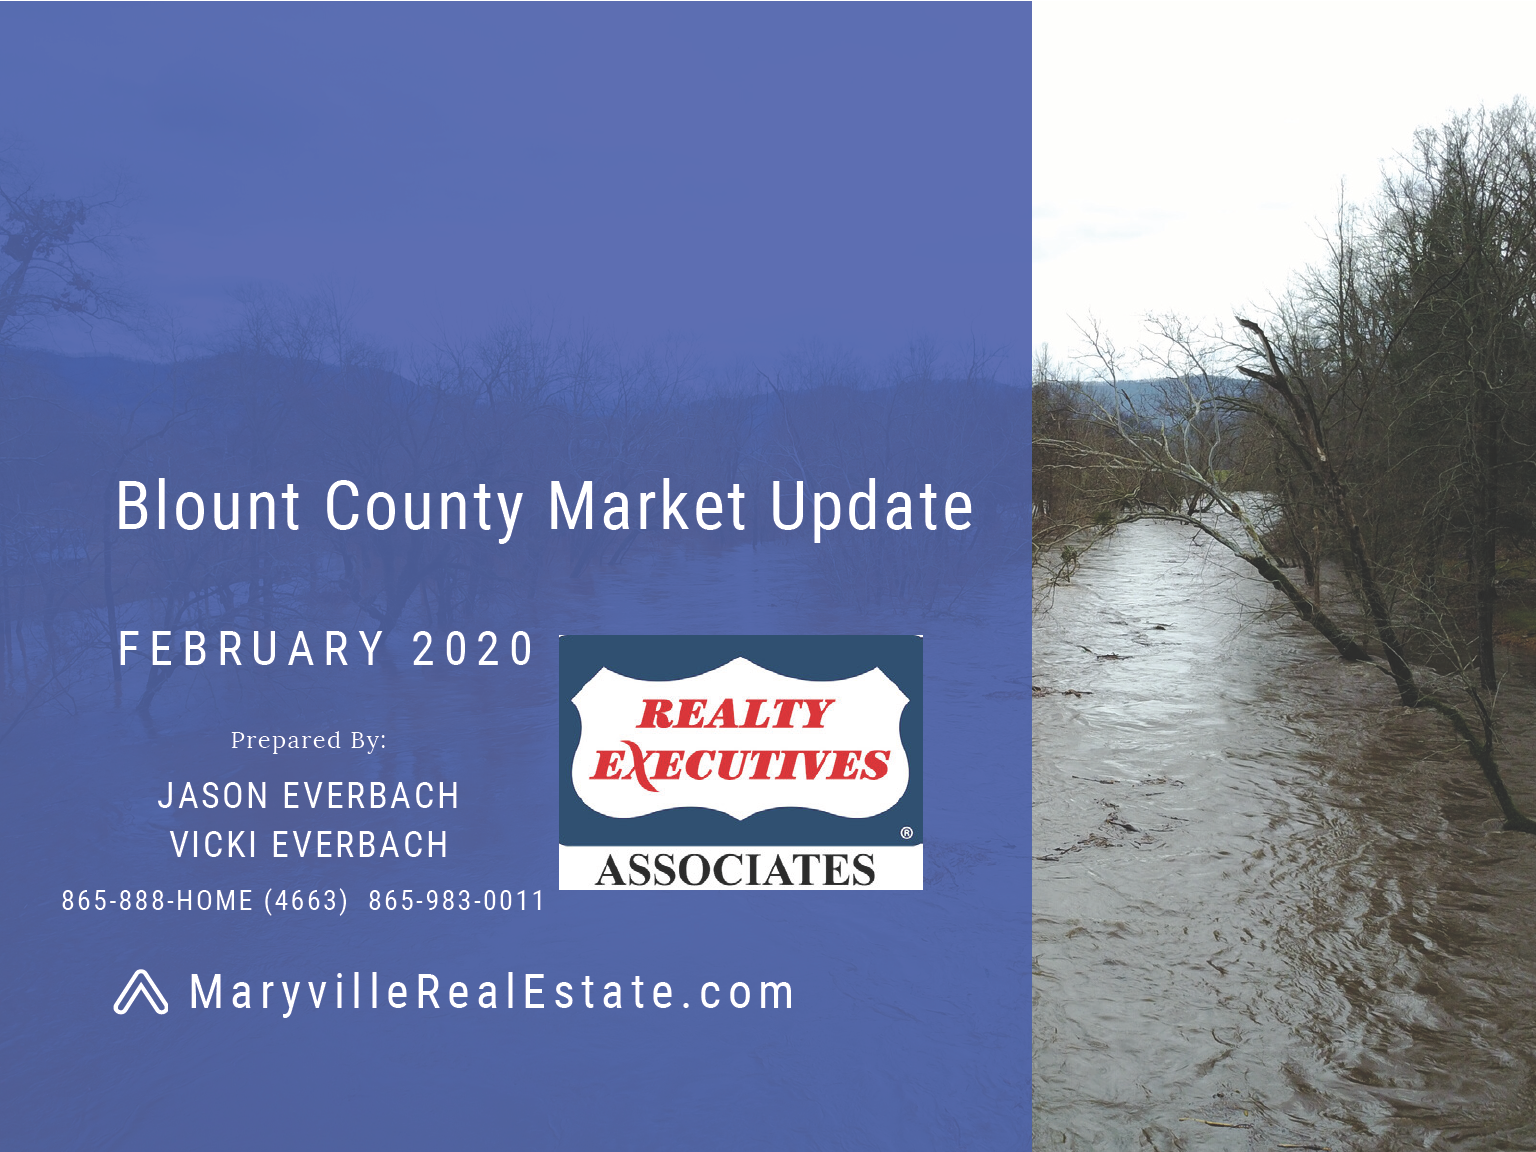 February 2020 Blount County Market Update